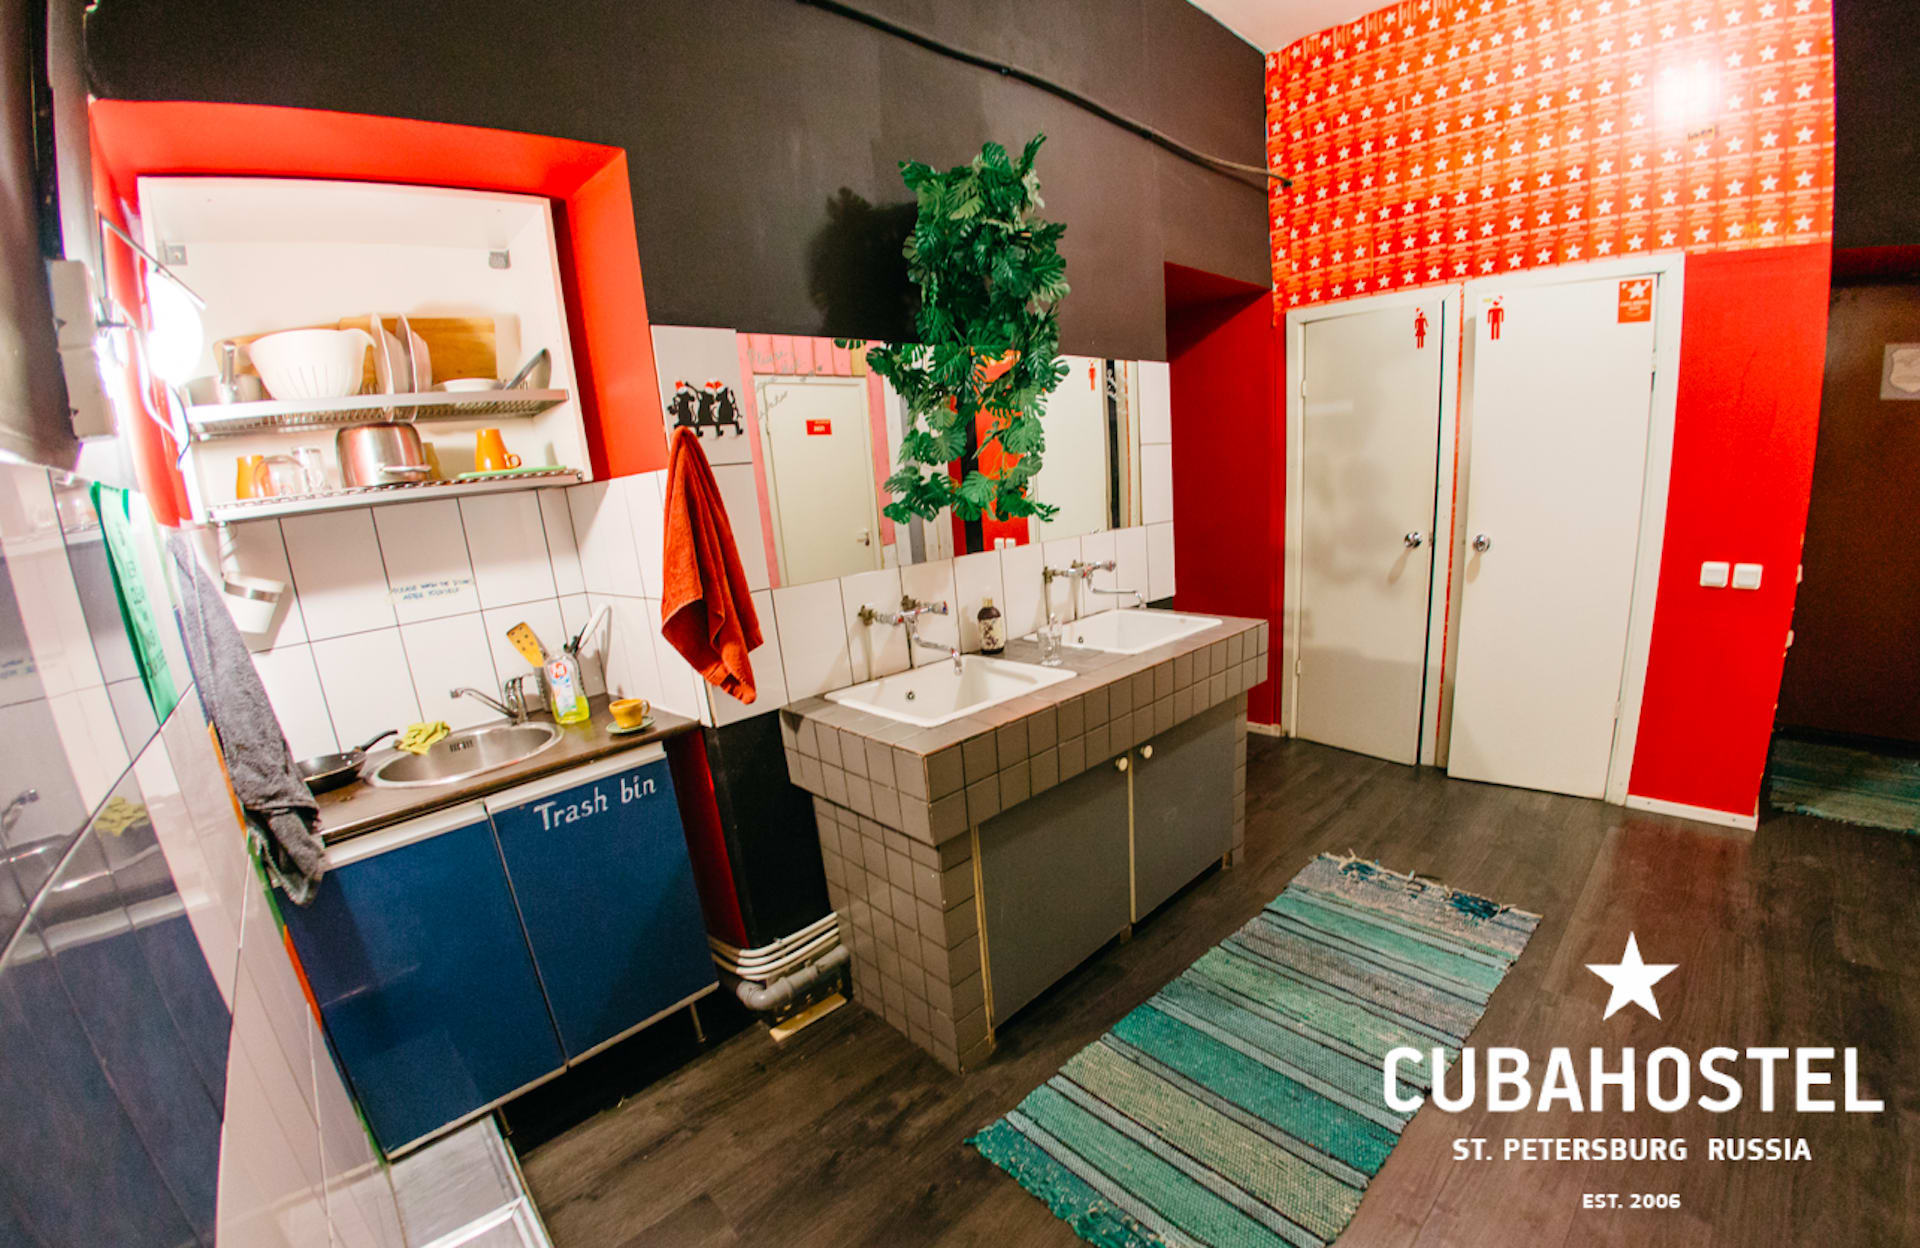 HOSTEL - The Cuba Hostel